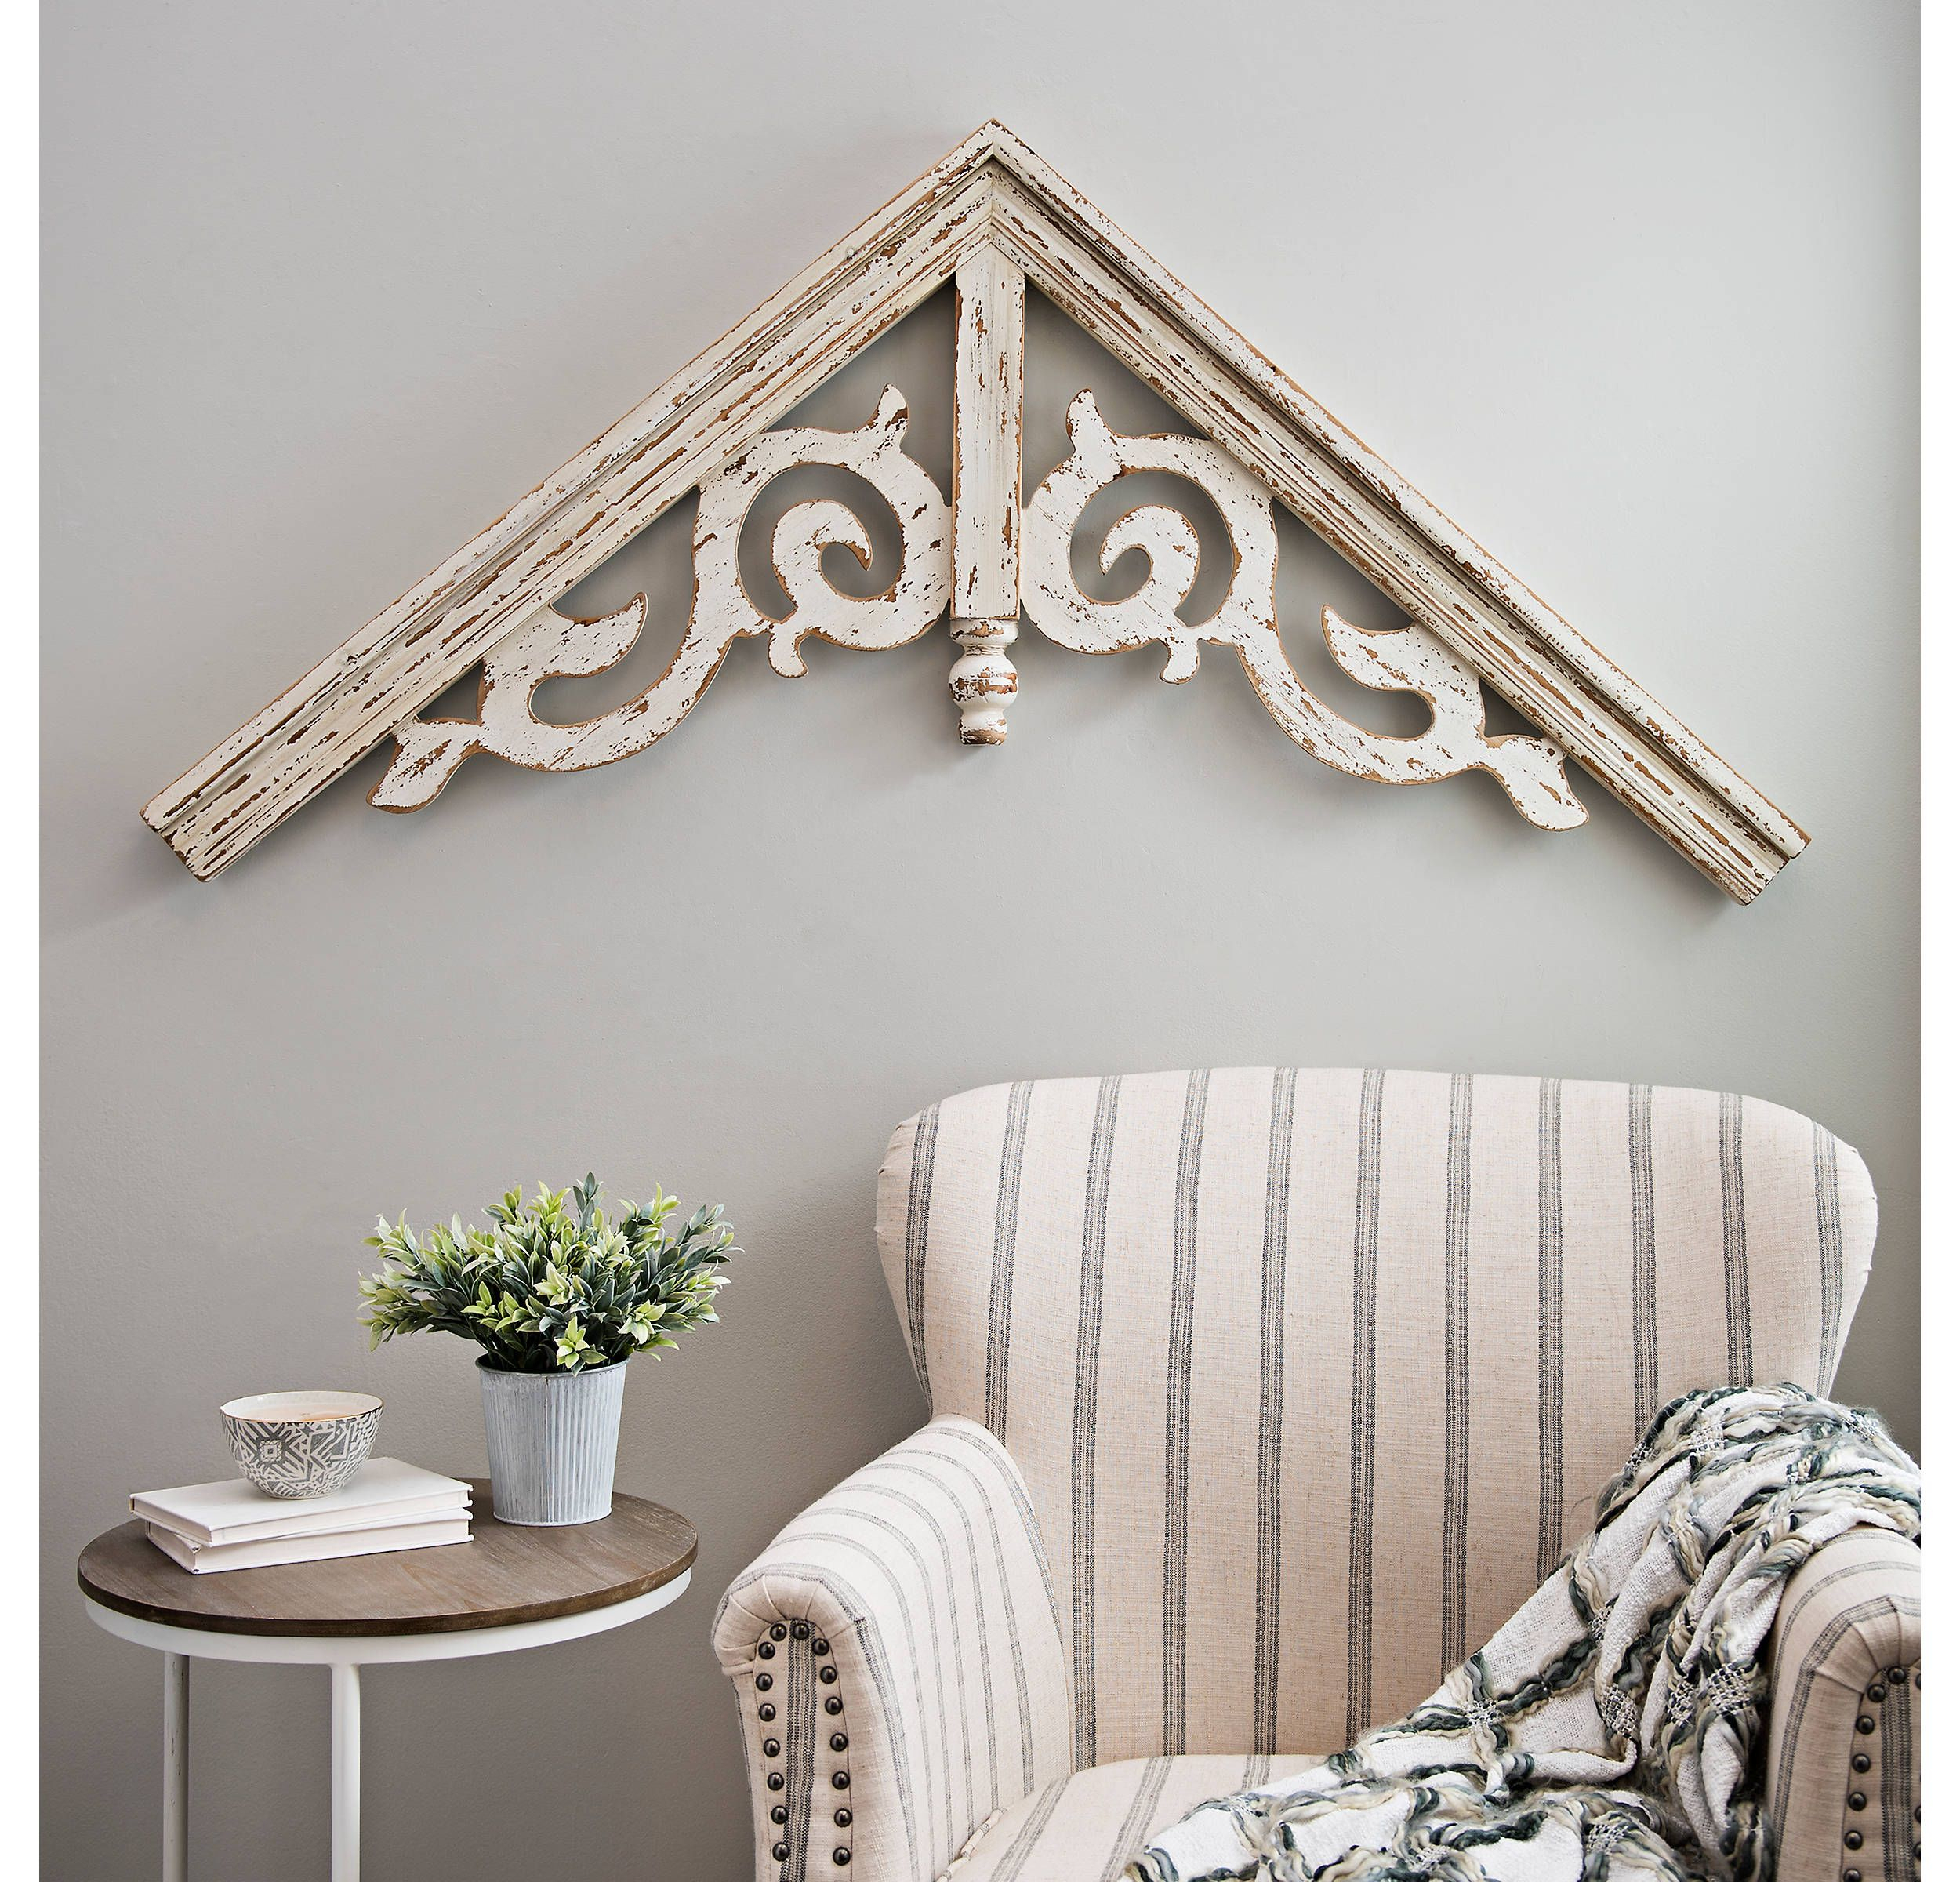 Product Details Corbel Antique White Ornate Scroll Arched throughout Ornate Scroll Wall Decor (Image 14 of 30)